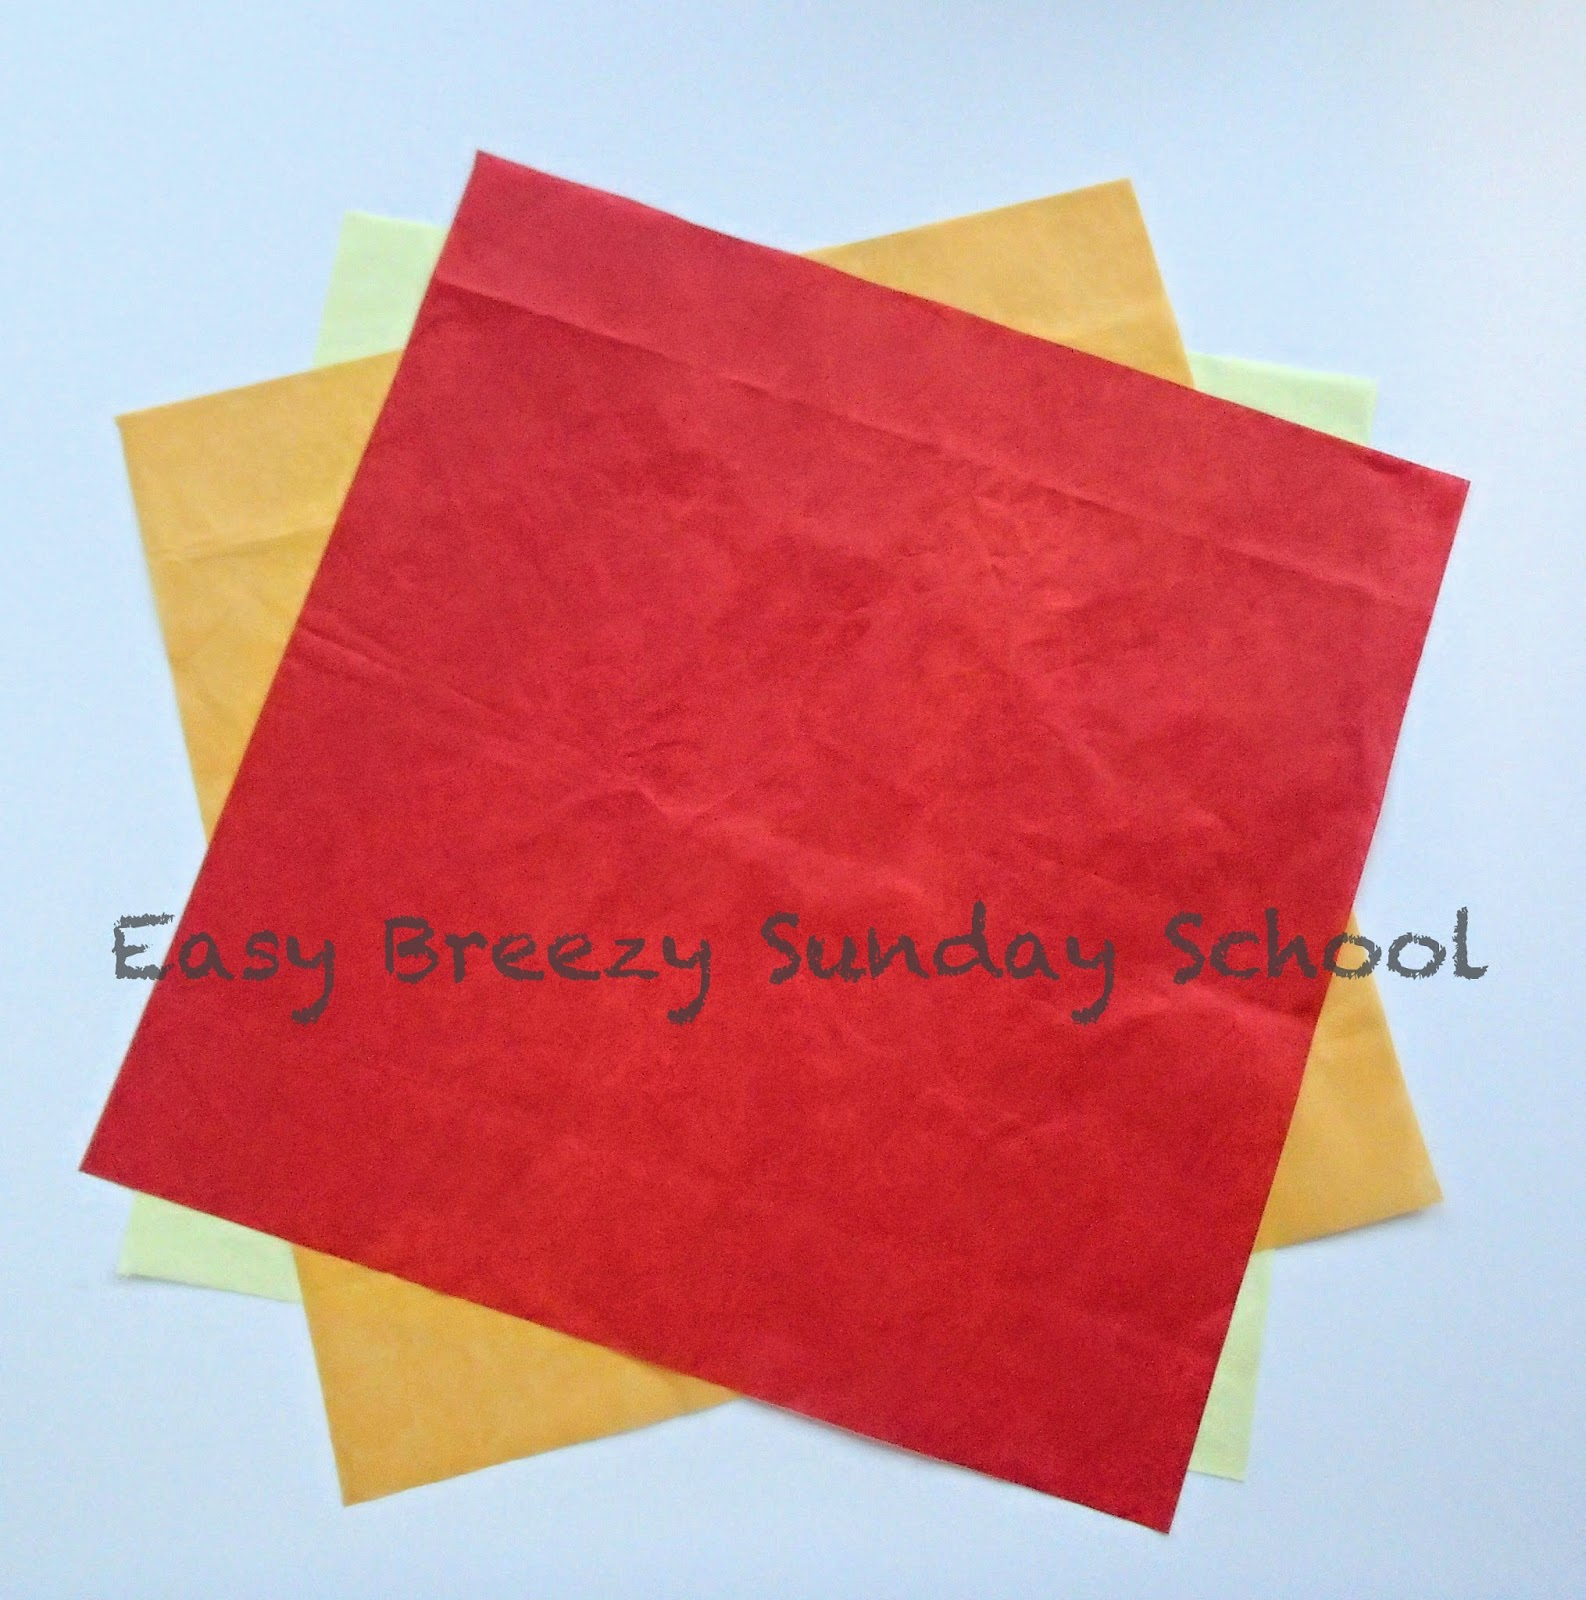 Tear fall colored construction paper into small pieces and glue - For A Little Older 1st 2nd Grade Ask Them To Tear The Paper Into Pieces And Glue To The Inside Of The Cup